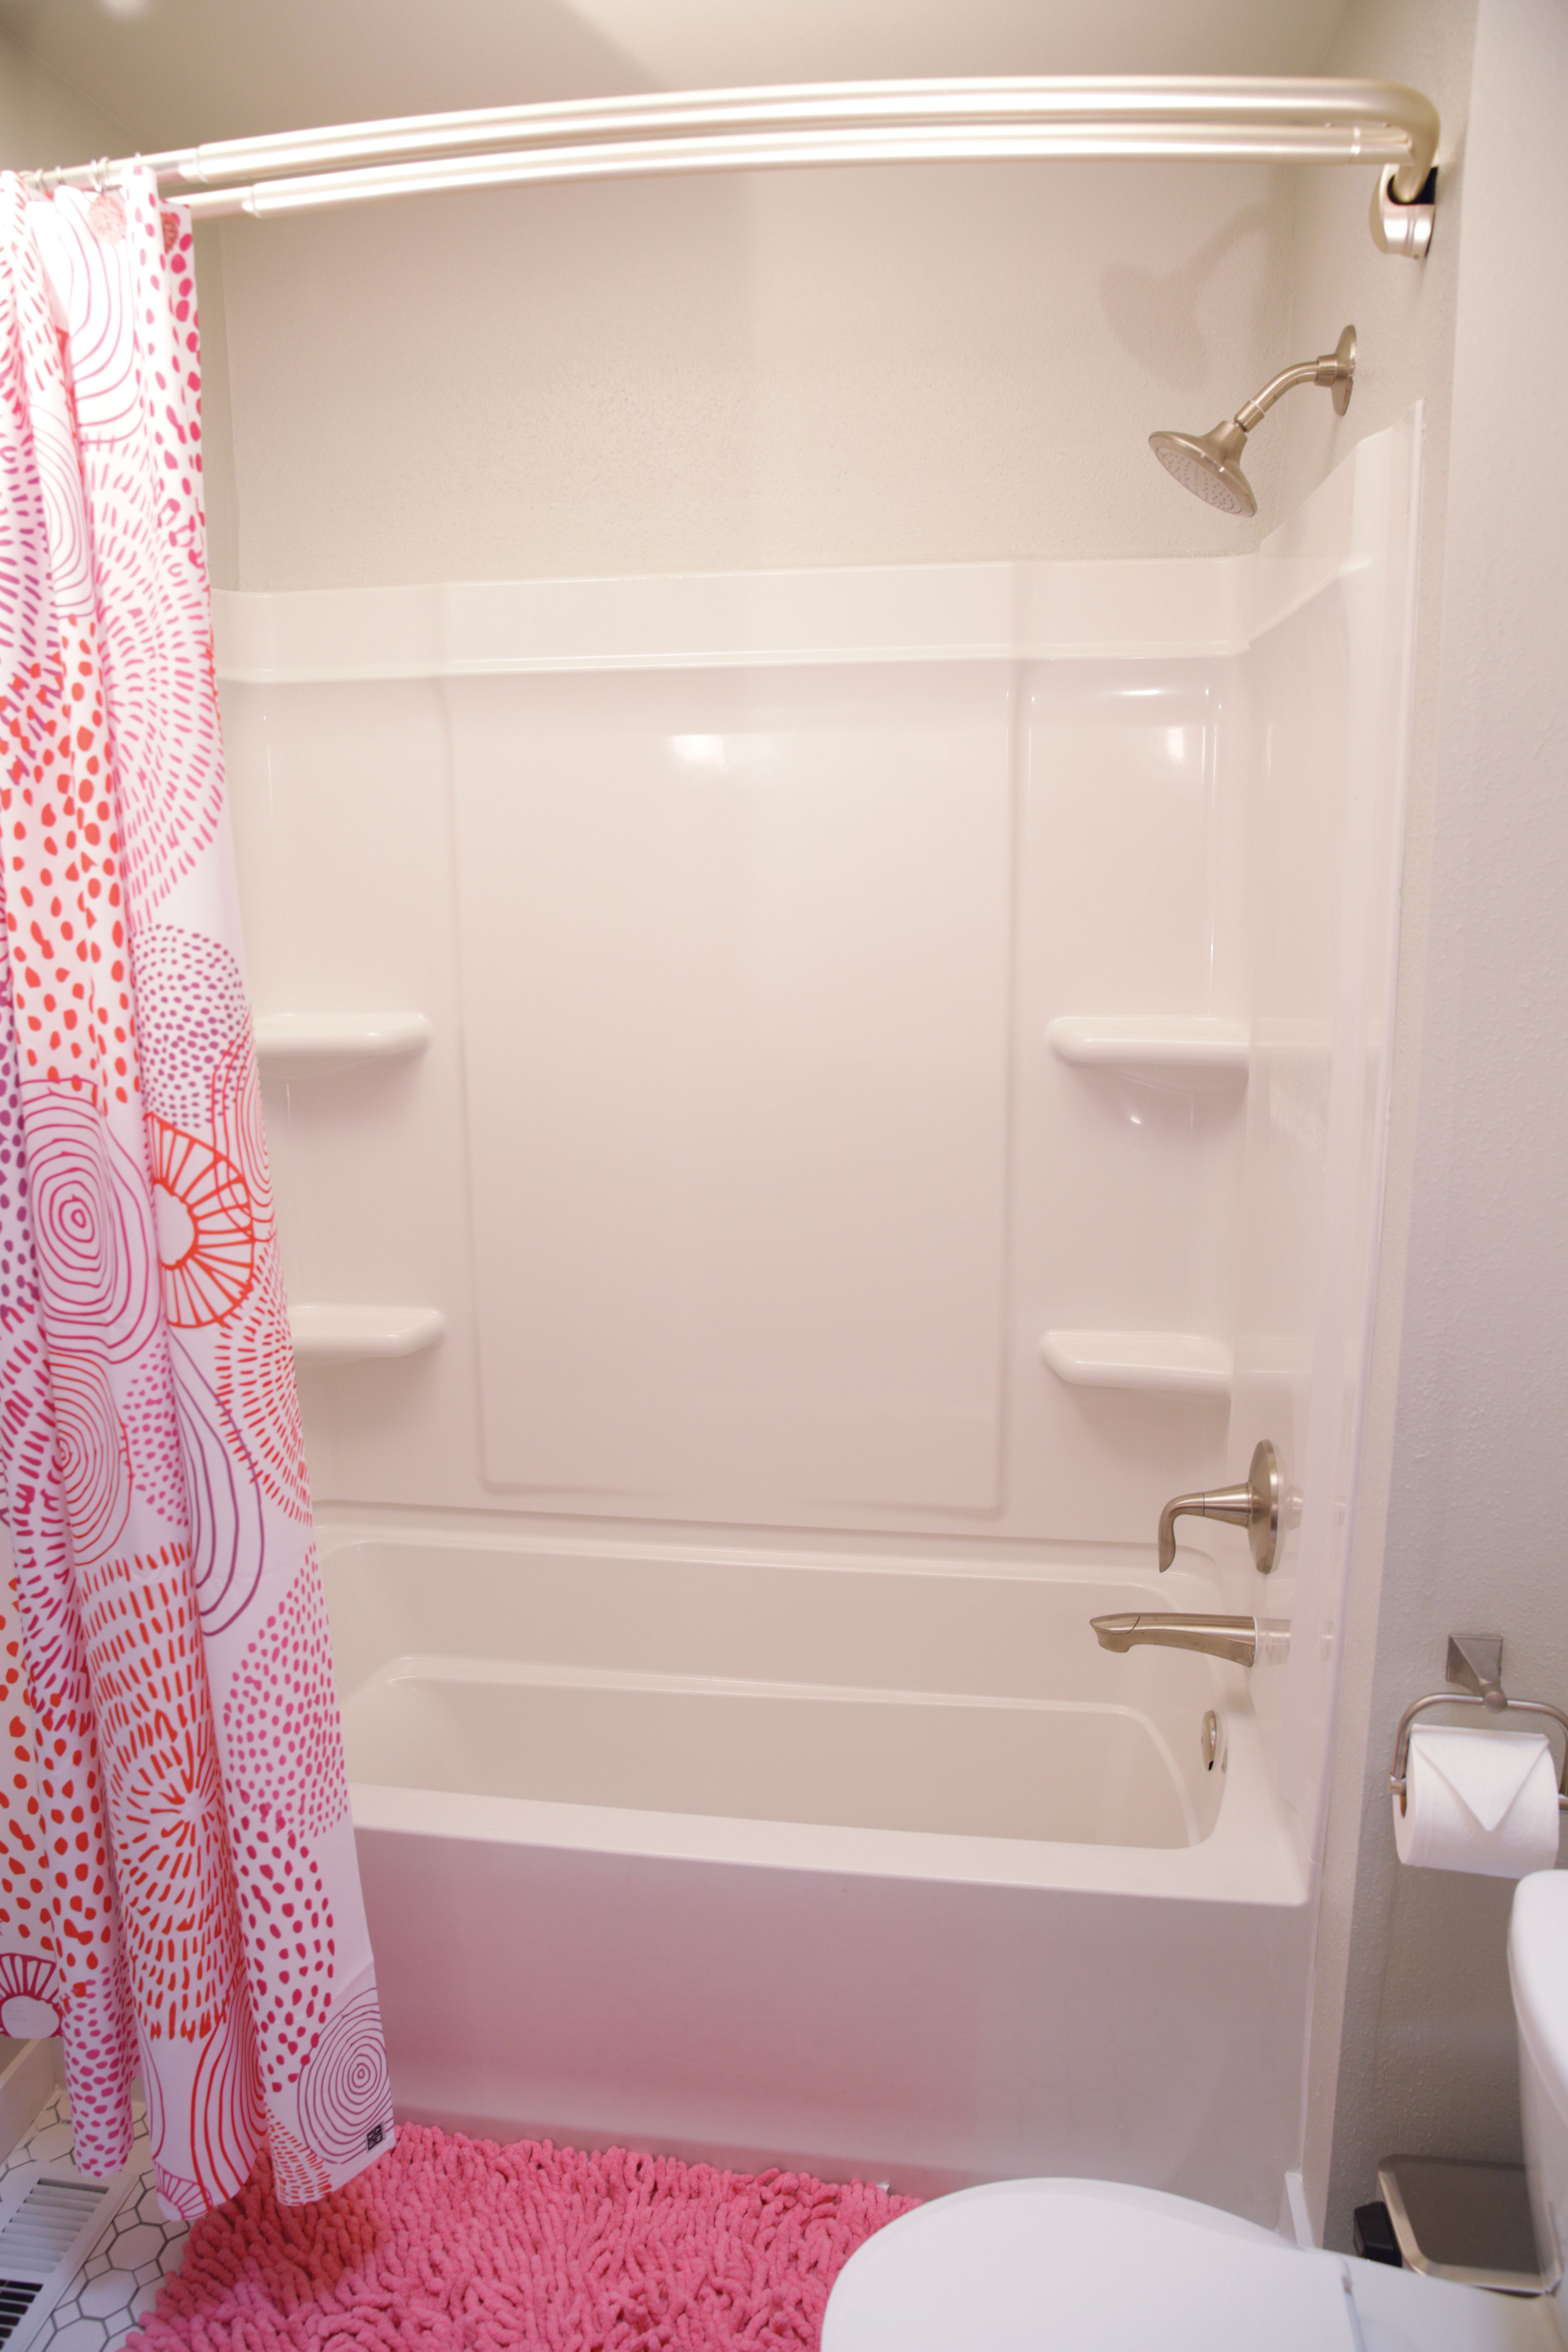 AFTER: The Sterling Ensemble Medley Bath/shower Was A Great Choice For A  Kidsu0027 Bath Because Its Vikrell Material Makes It Durable, Easy To Clean And  ...